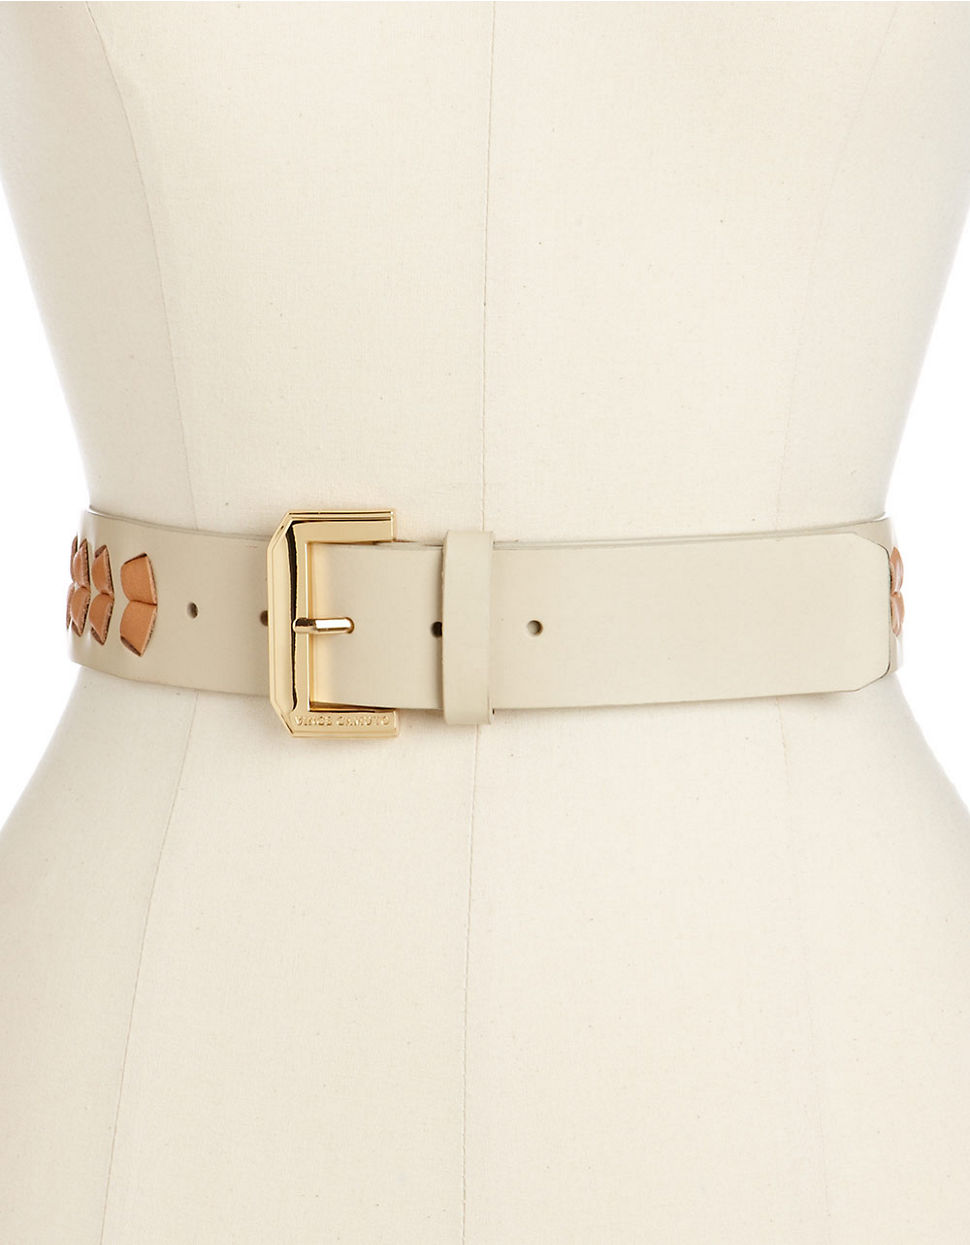 Vince camuto Weekend Casual Belt with Polished Gold Logo Buckle natural Medium